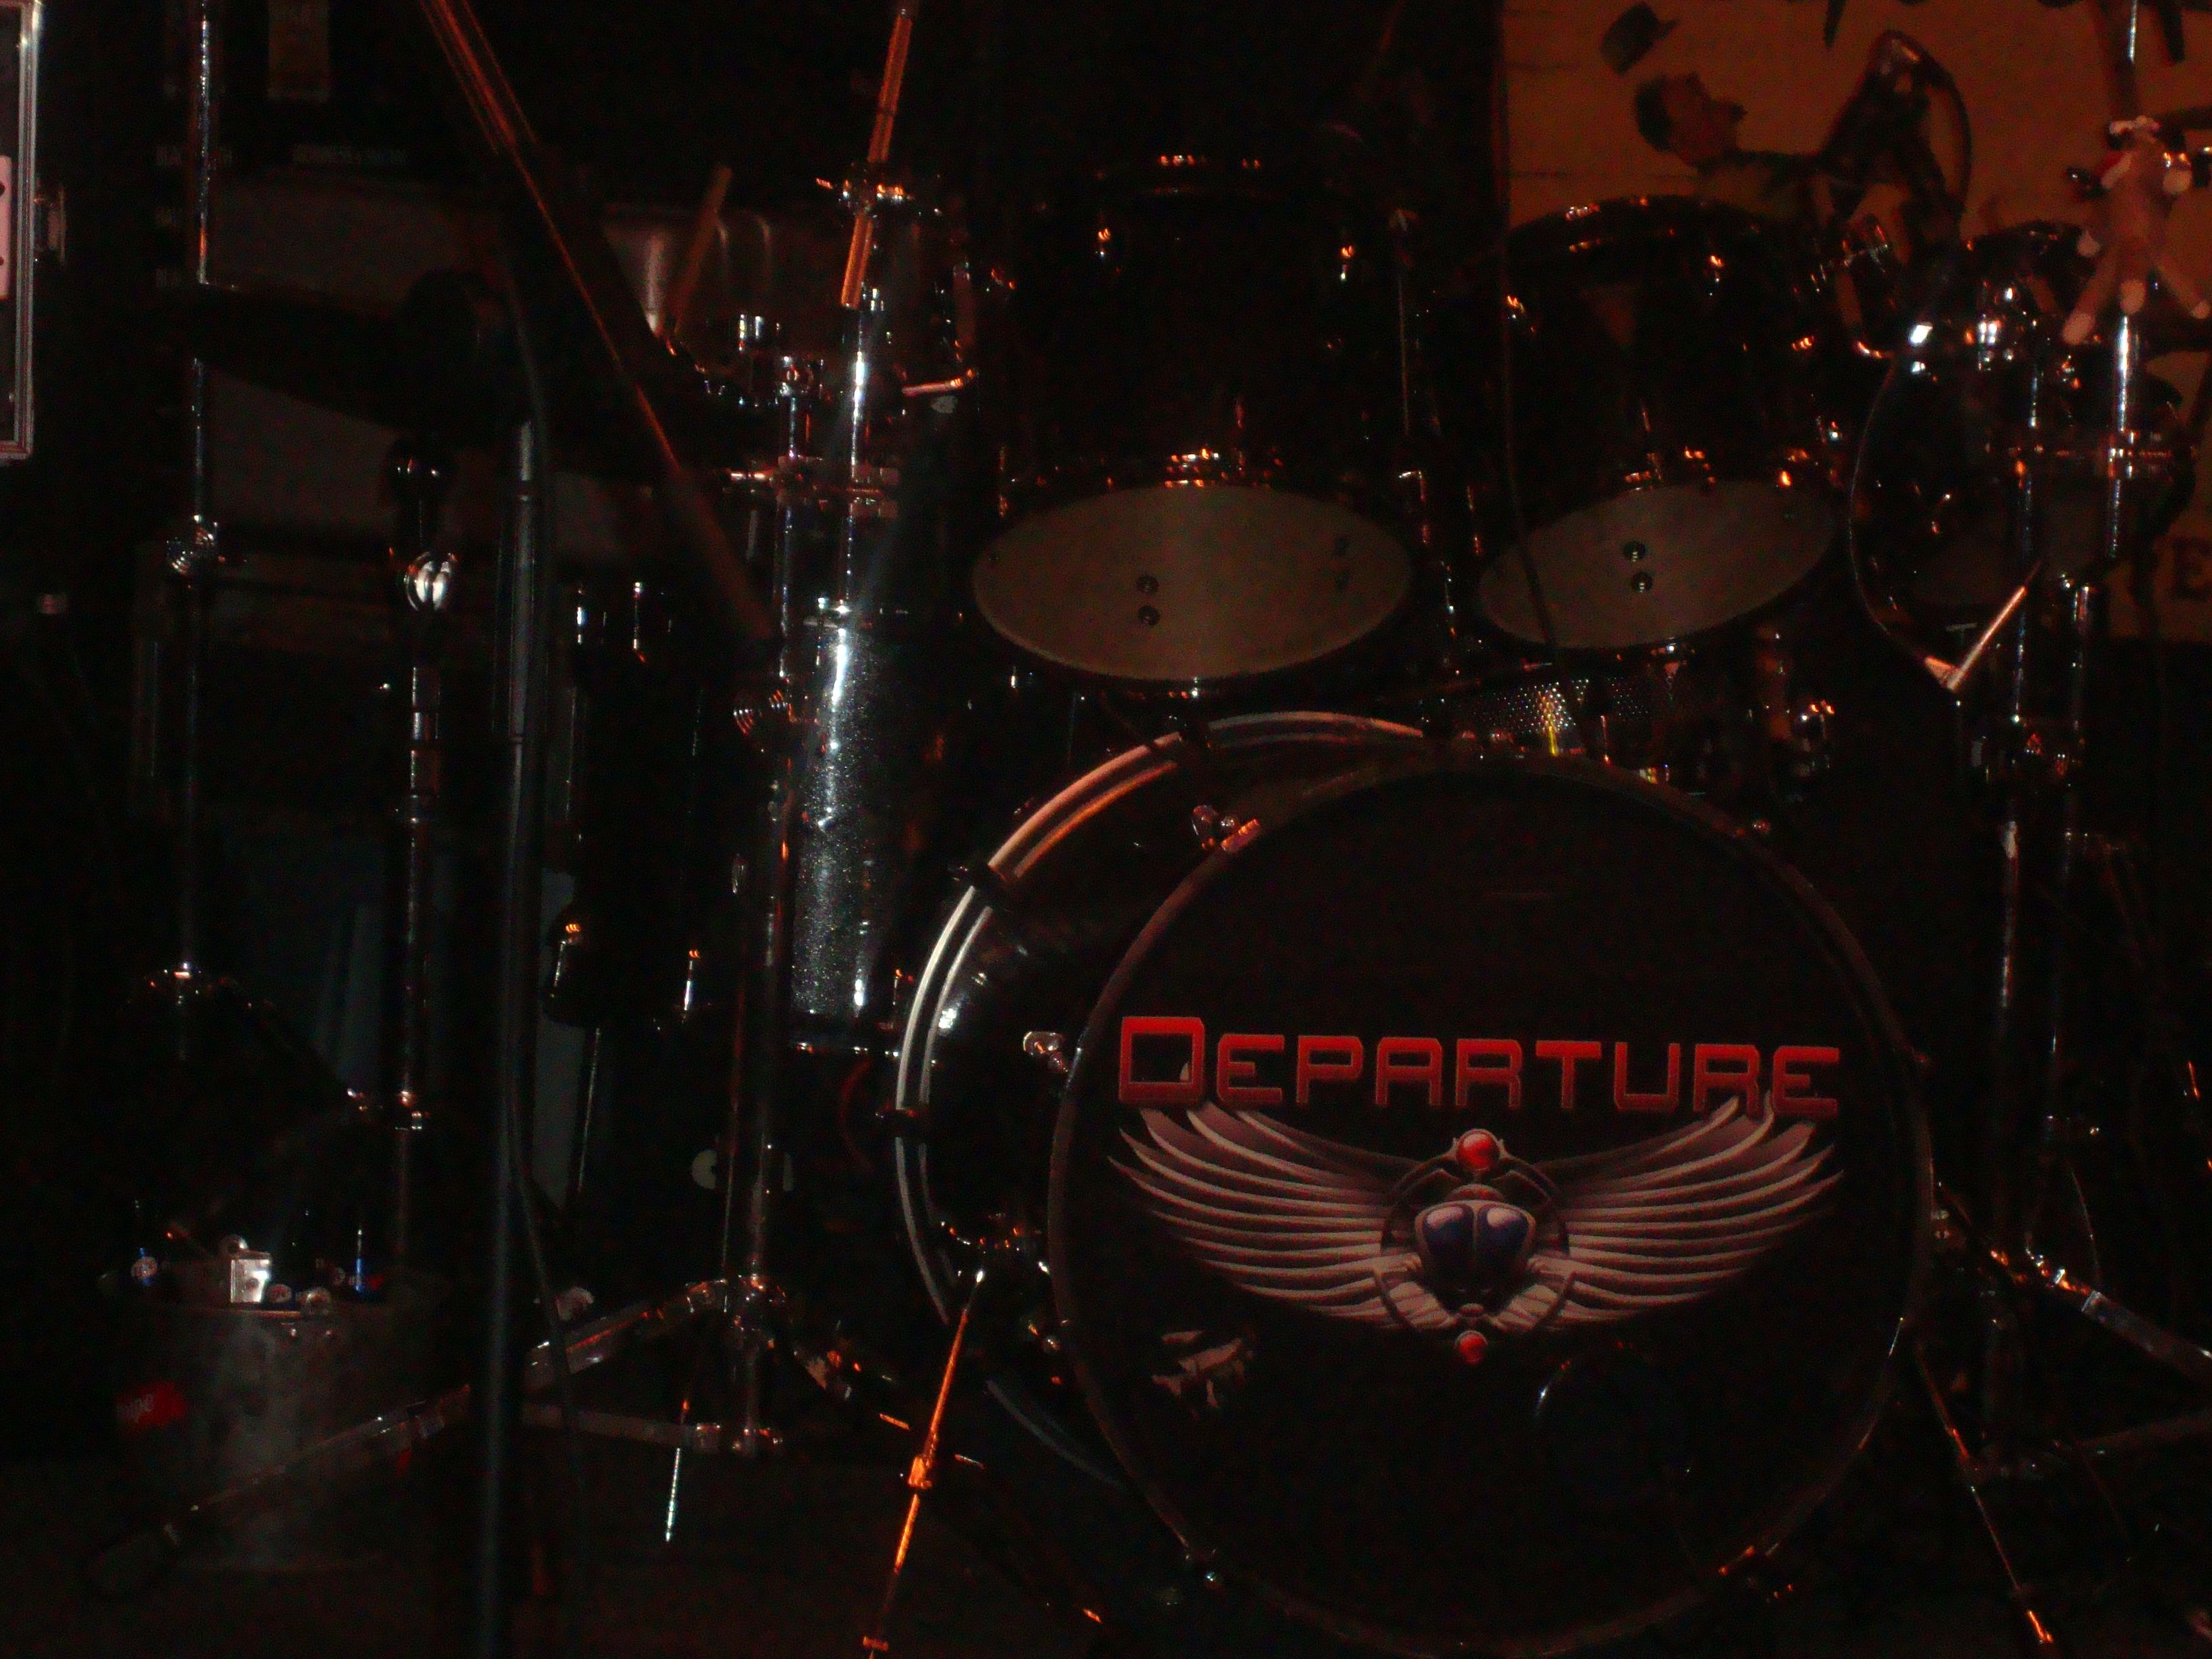 DEPARTURE The Journey Tribute Band is a awesome band